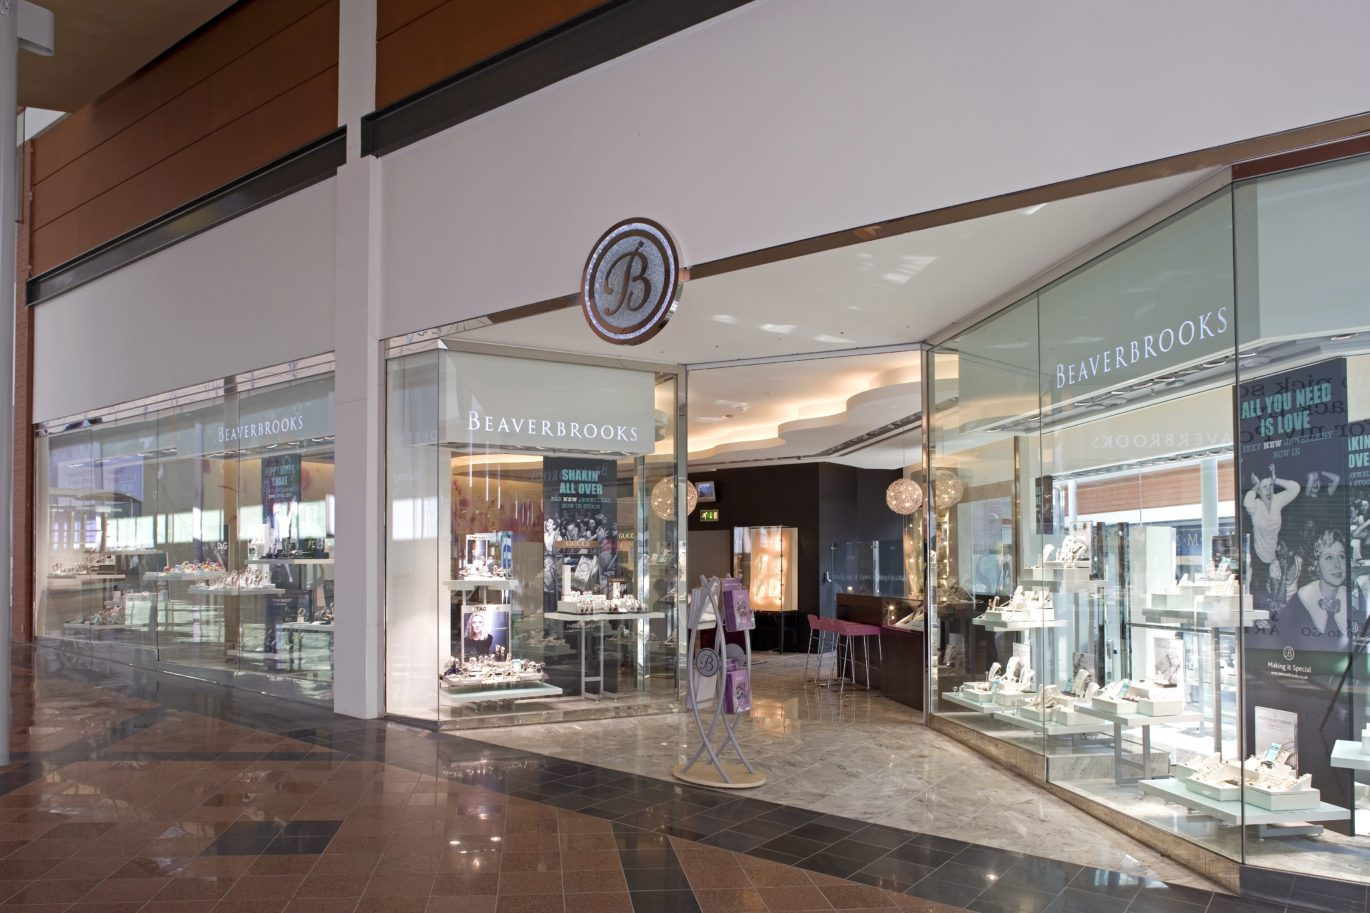 Beaverbrooks - Shopping Centre Shopfit for a Multiple Retailer